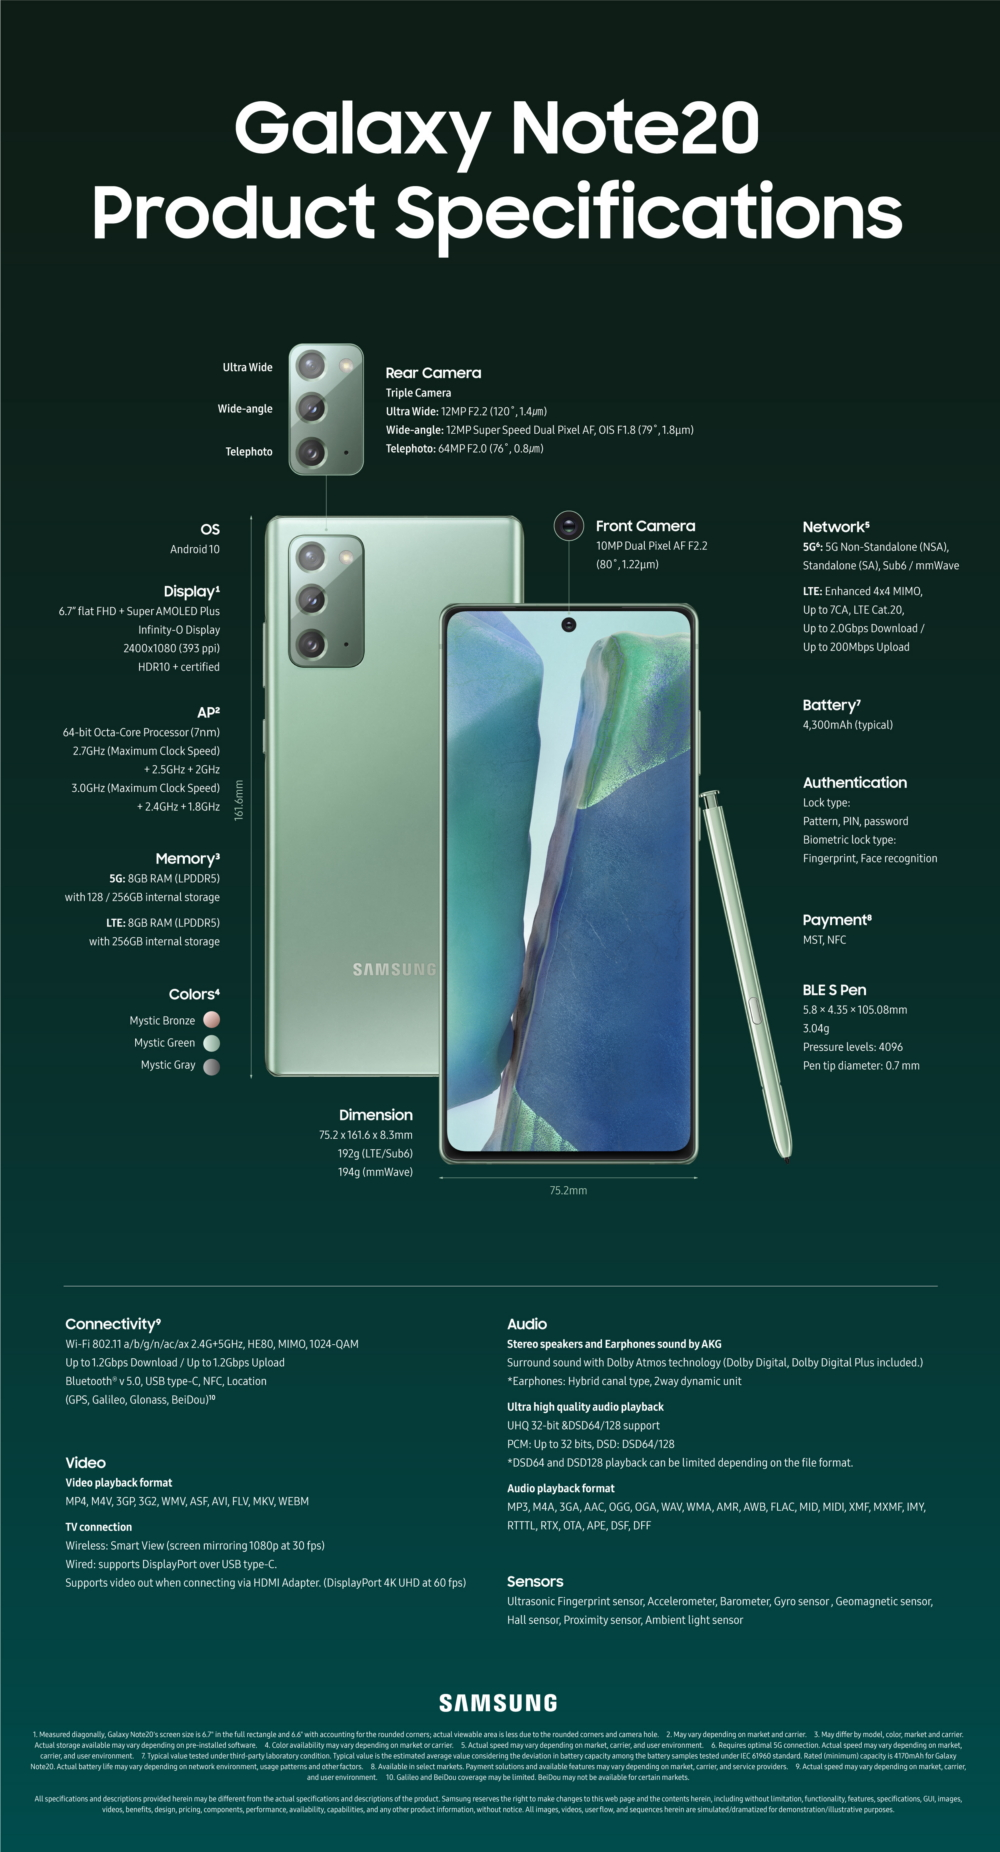 [Infographic] An Up-Close Look at the Galaxy Note20 and Note20 Ultra # Infographic